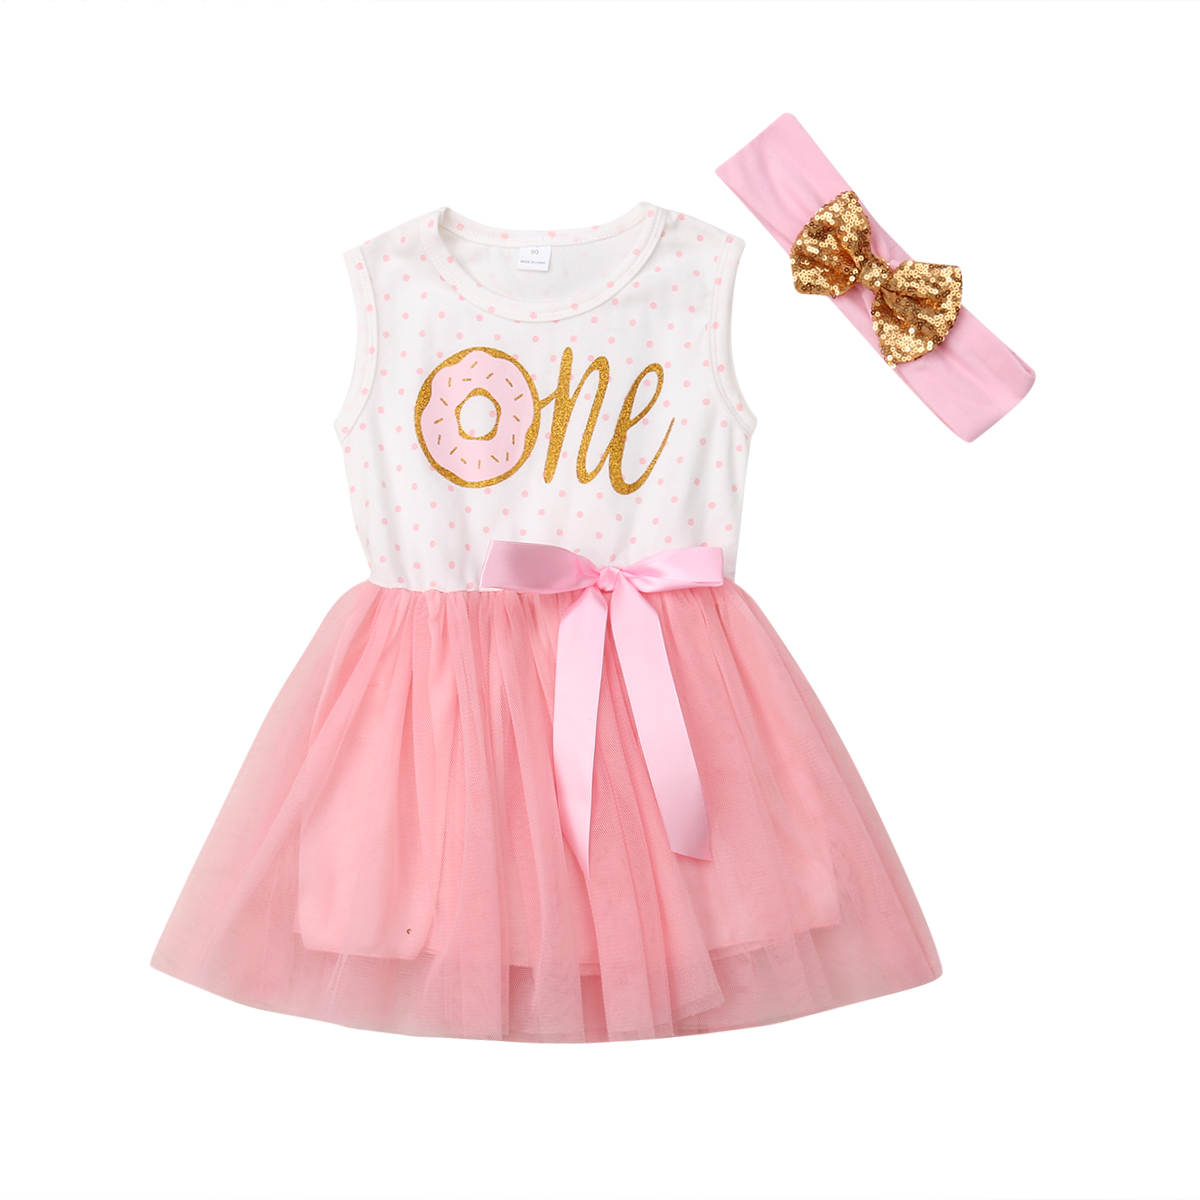 Infant Baby Kids Girl Princess Party Dress+Headband Outfit Sister Clothes Set US